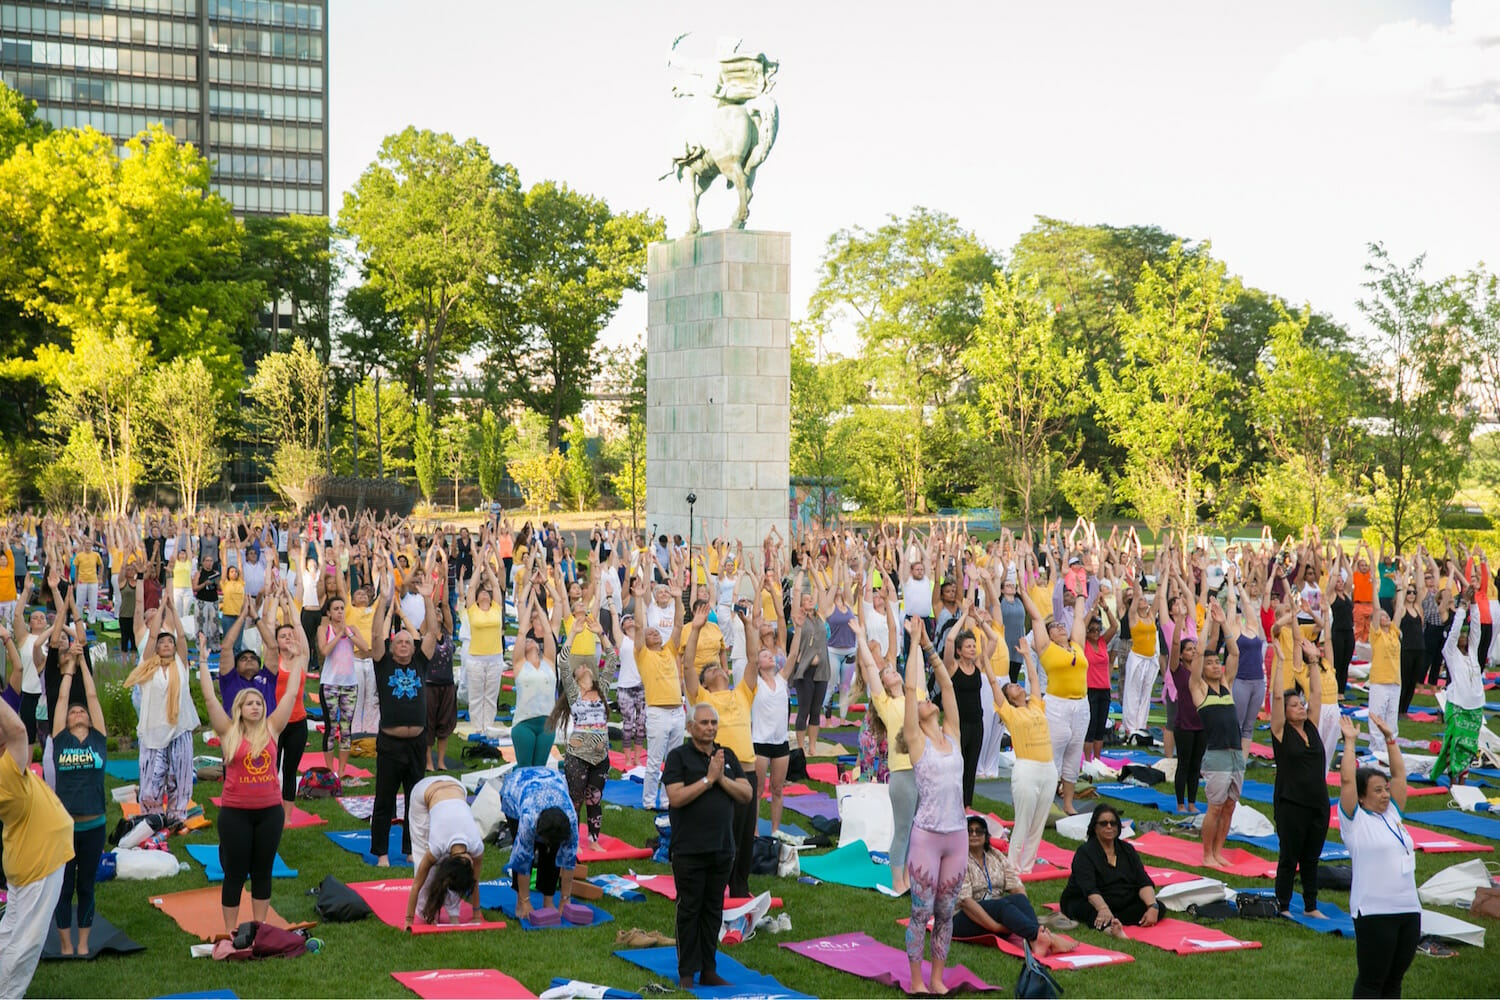 International Day of Yoga at the United Nations, NYC at the Sivananda Yoga Ranch